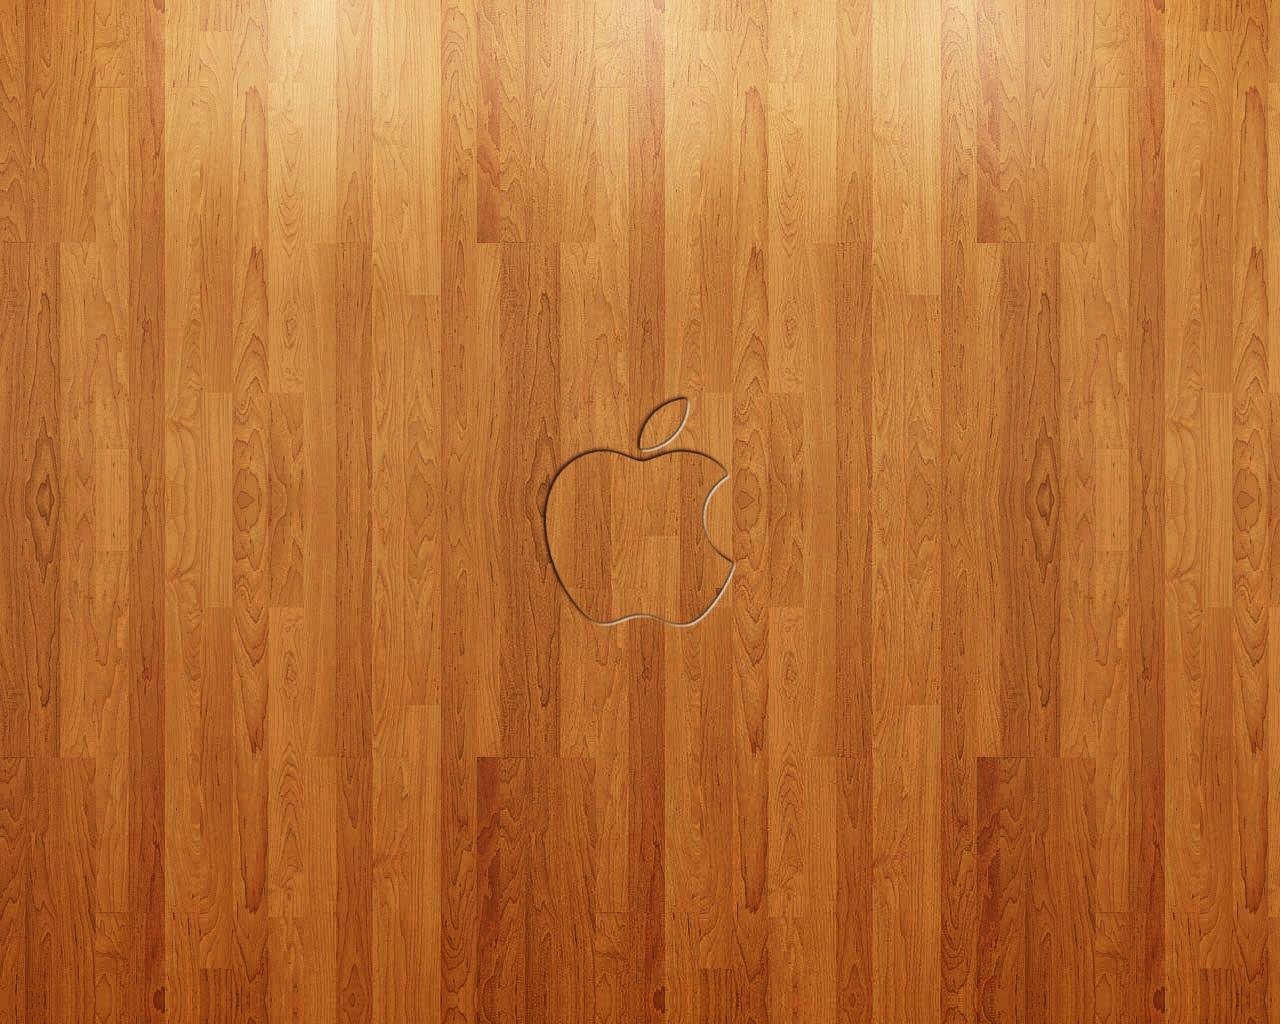 Wood Wallpaper 5 With 1280 x 1024 Resolution ( 384kB )